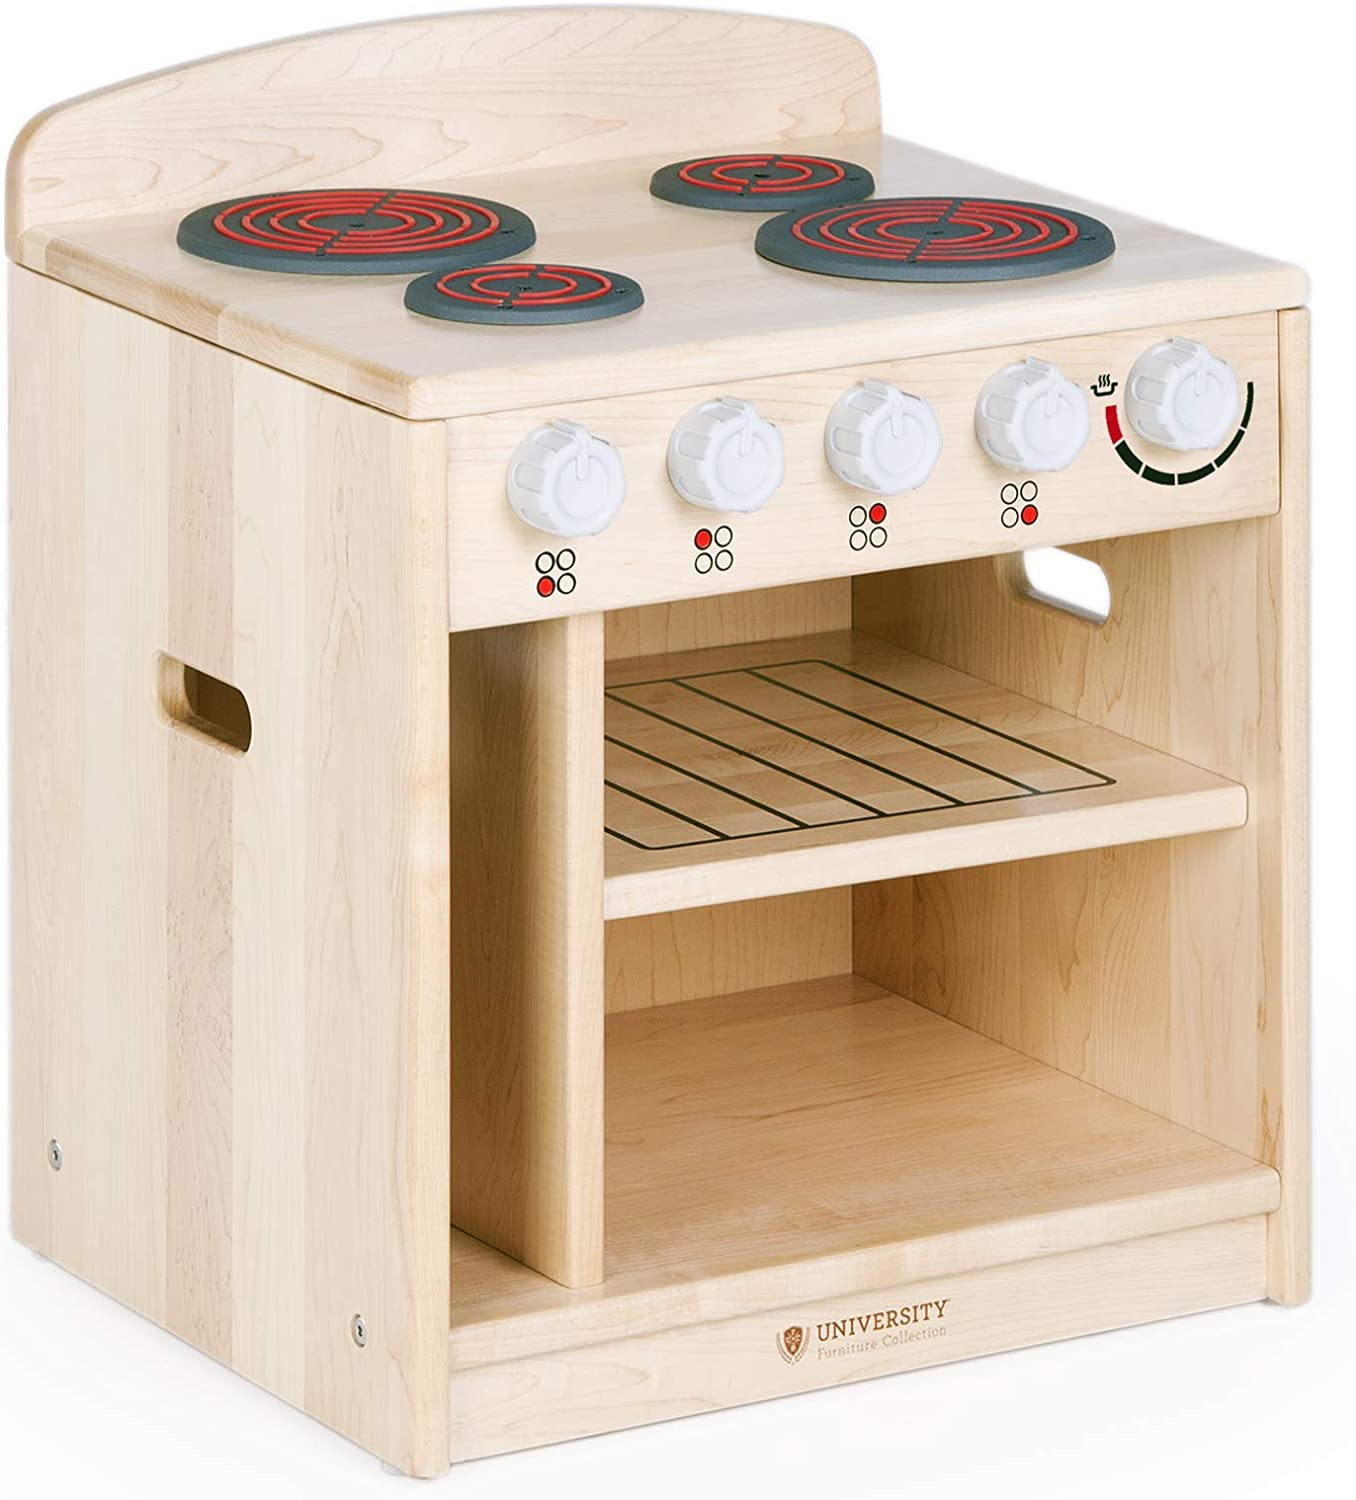 Guidecraft Toddler Stove - Solid Pretend Durable P Free shipping anywhere in the nation Animer and price revision Wooden Maple: